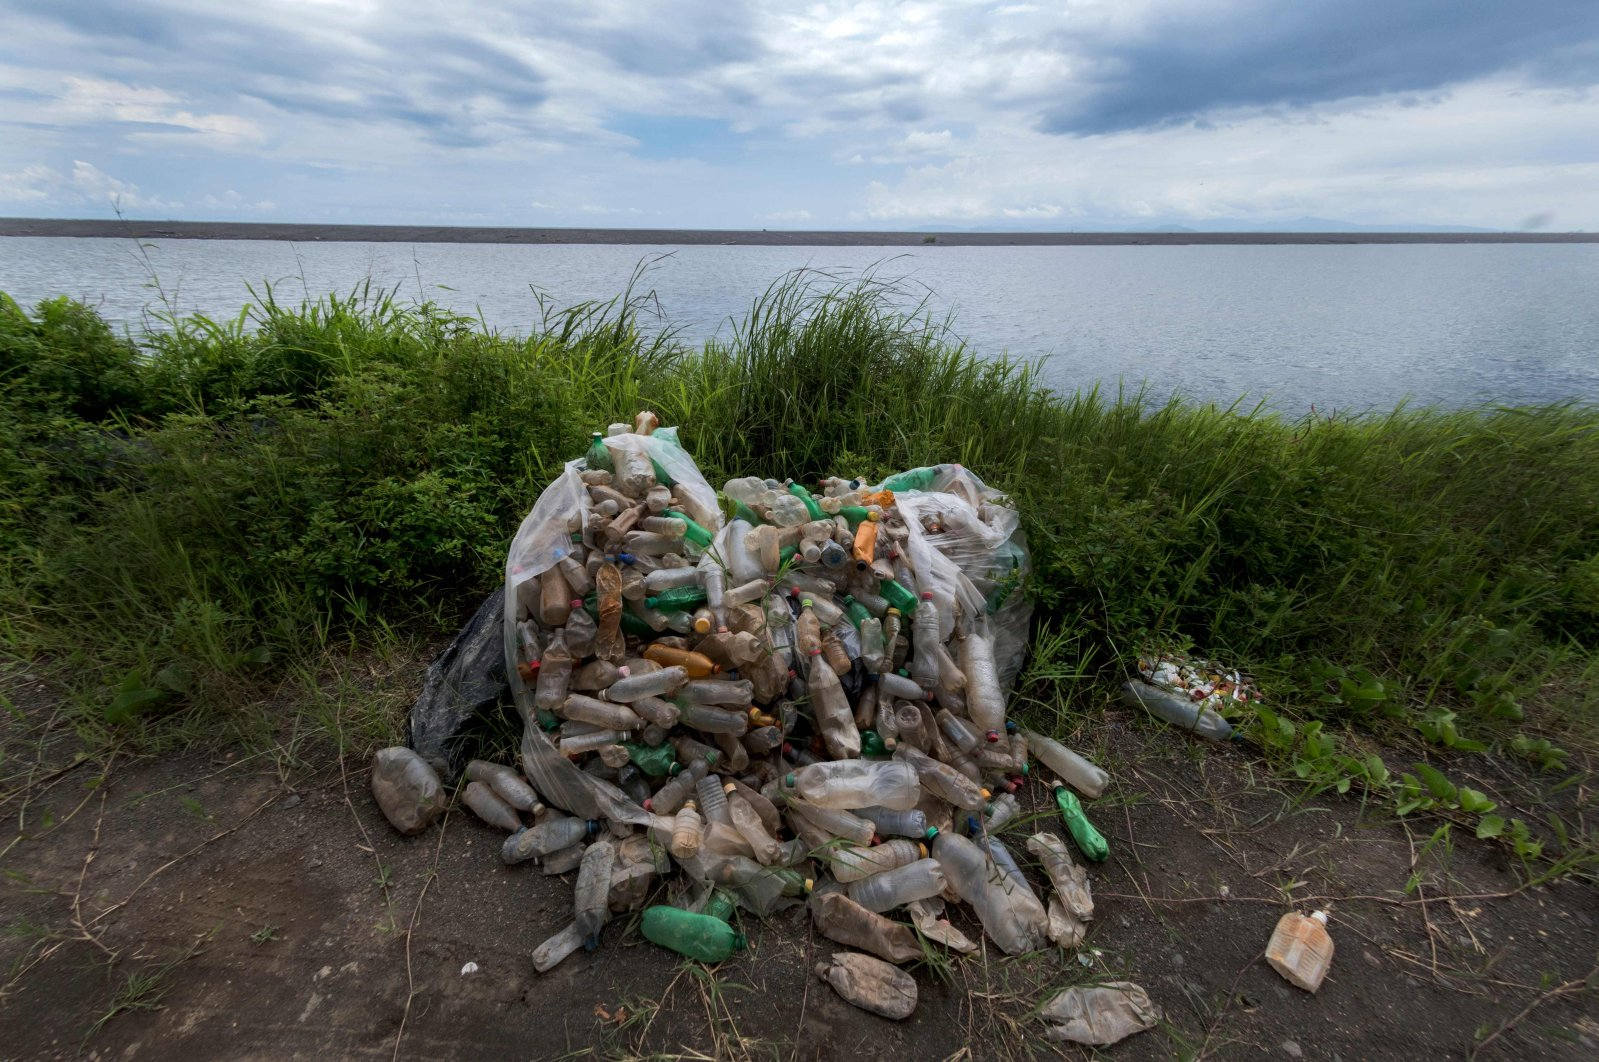 A view of collected plastic waste at Guacalillo beach, in Puntarenas, Costa Rica, Aug. 14, 2018. (AFP Photo)